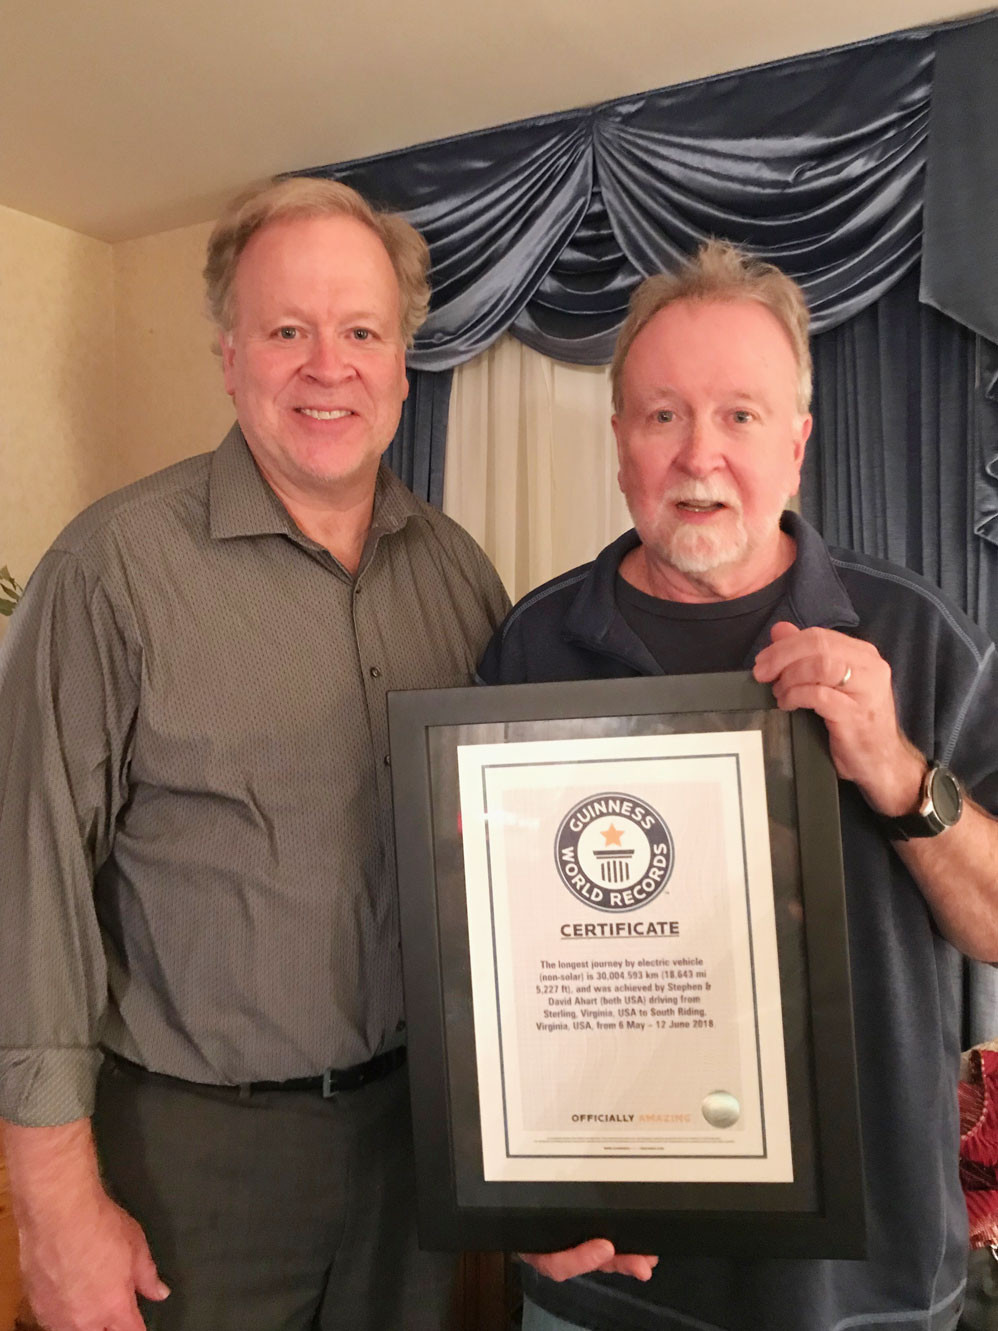 Steve and Dave Ahart with Guinness World Record Certificate